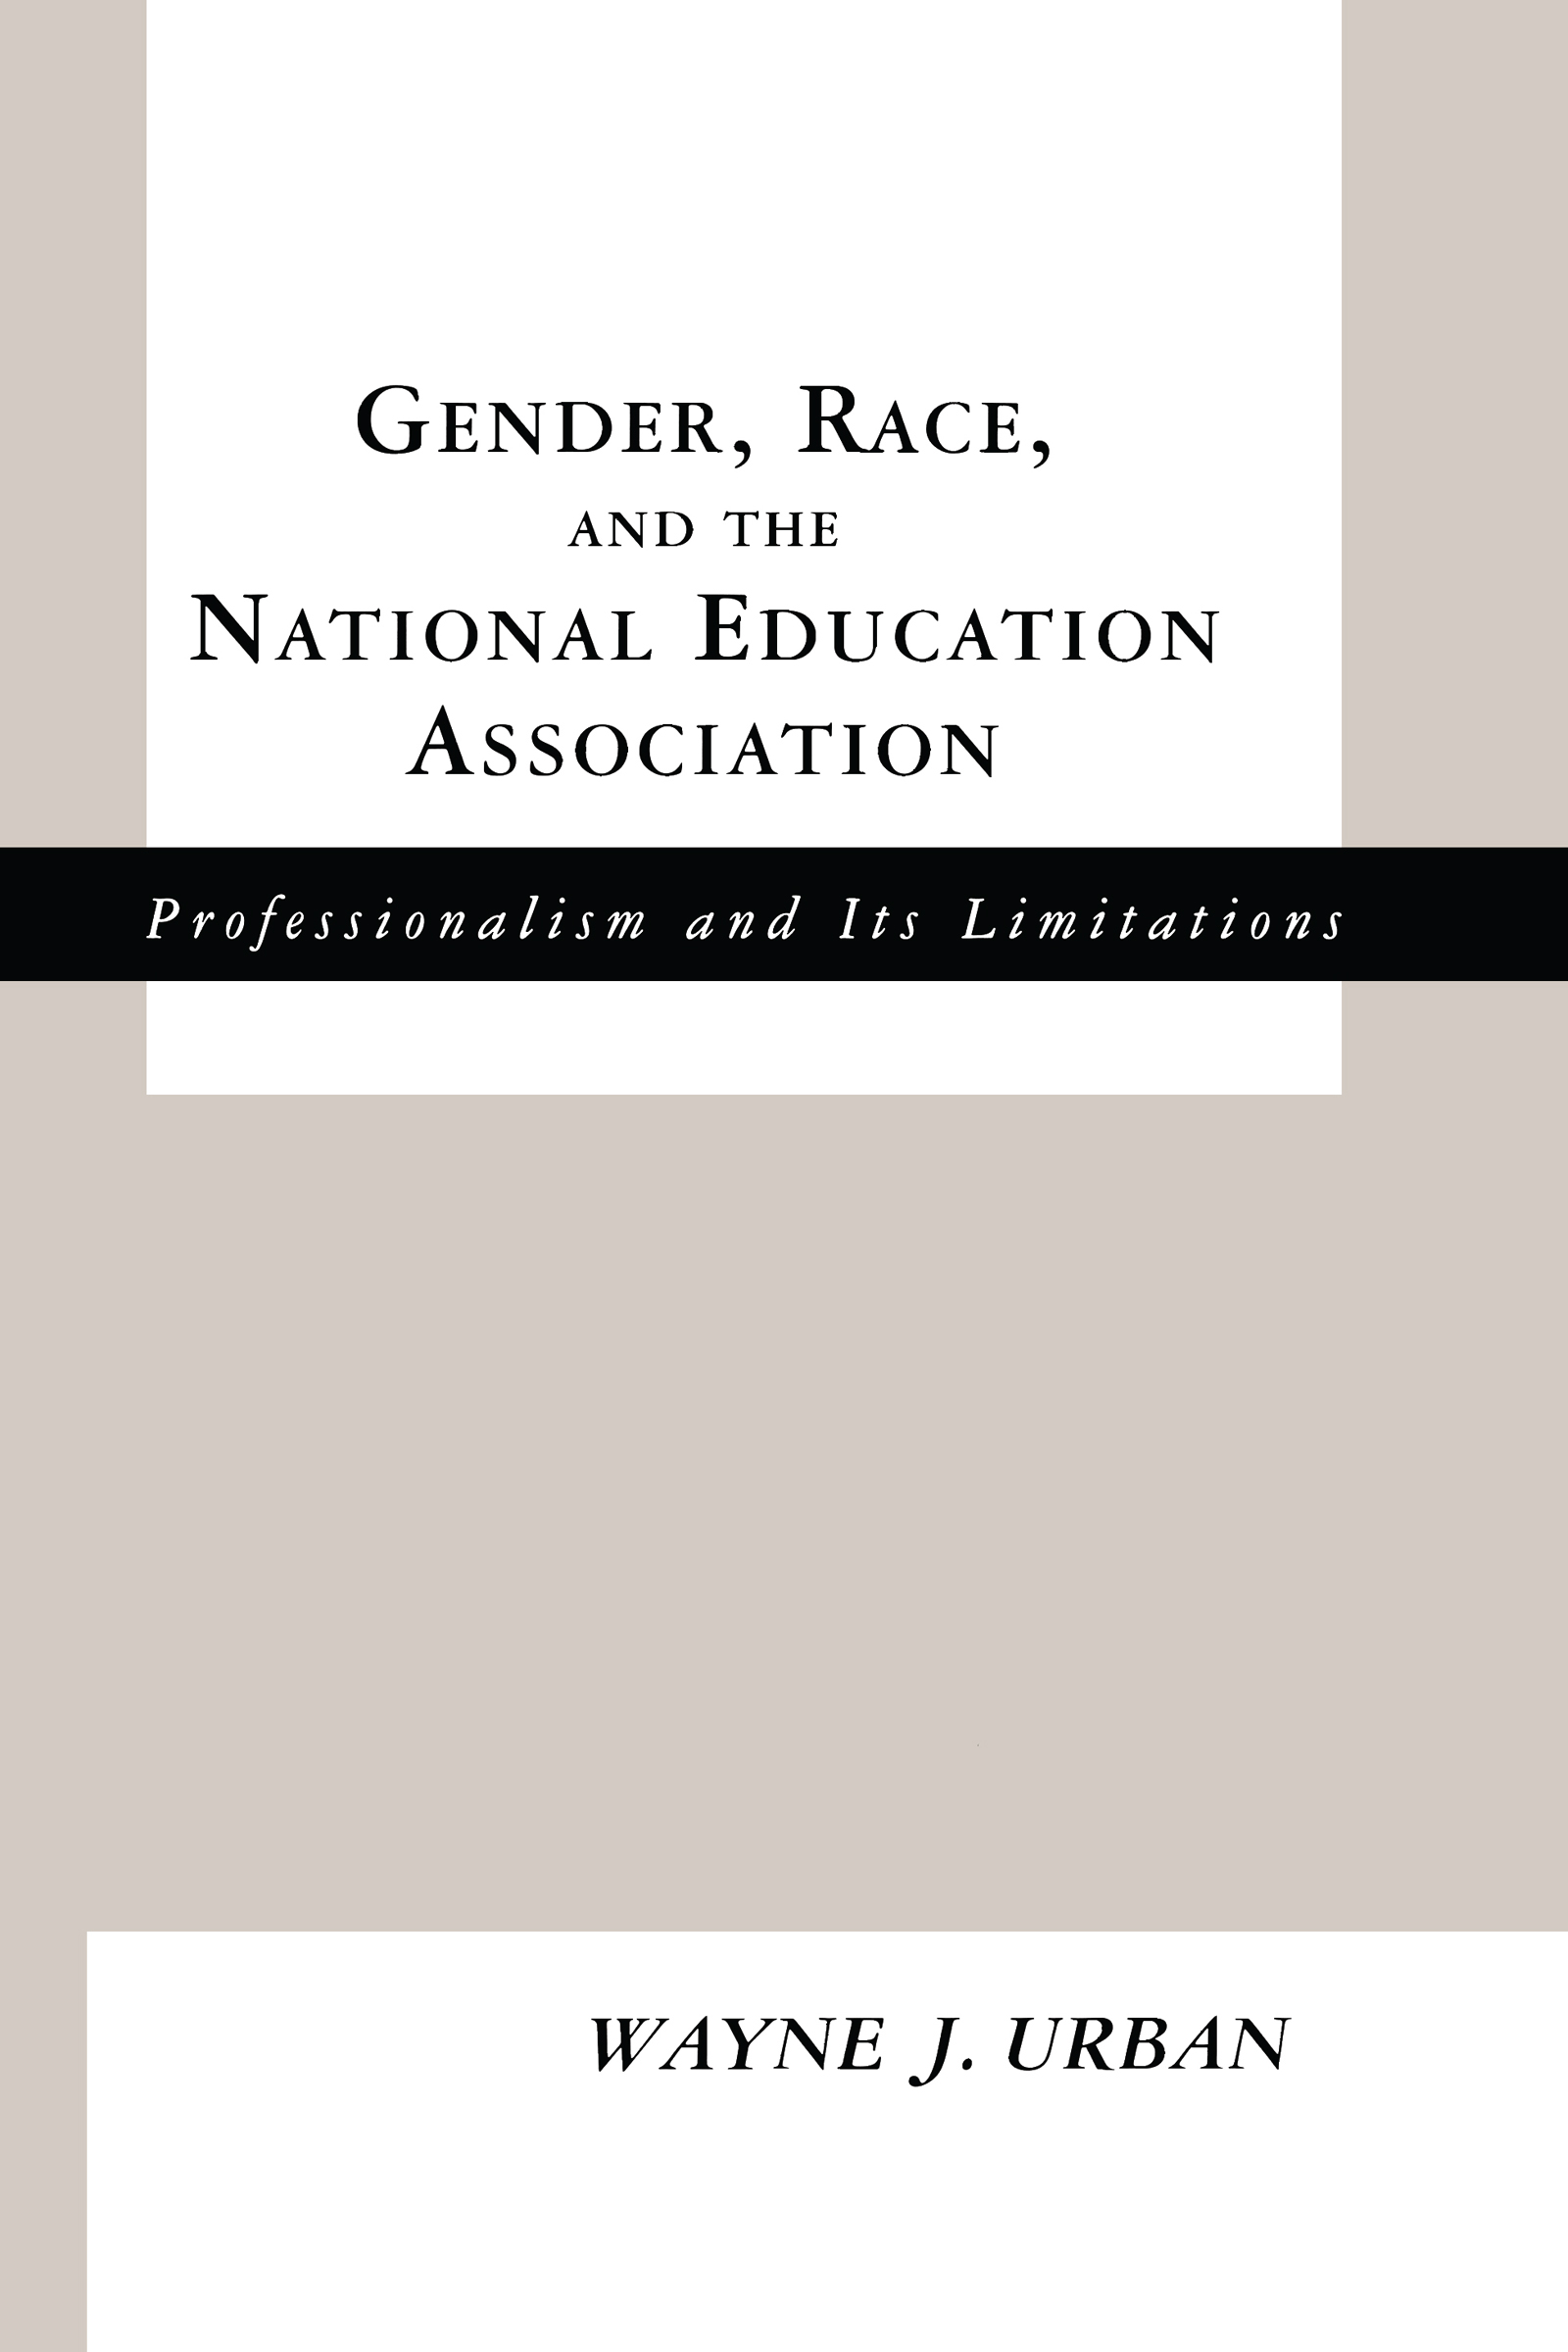 Gender, Race and the National Education Association